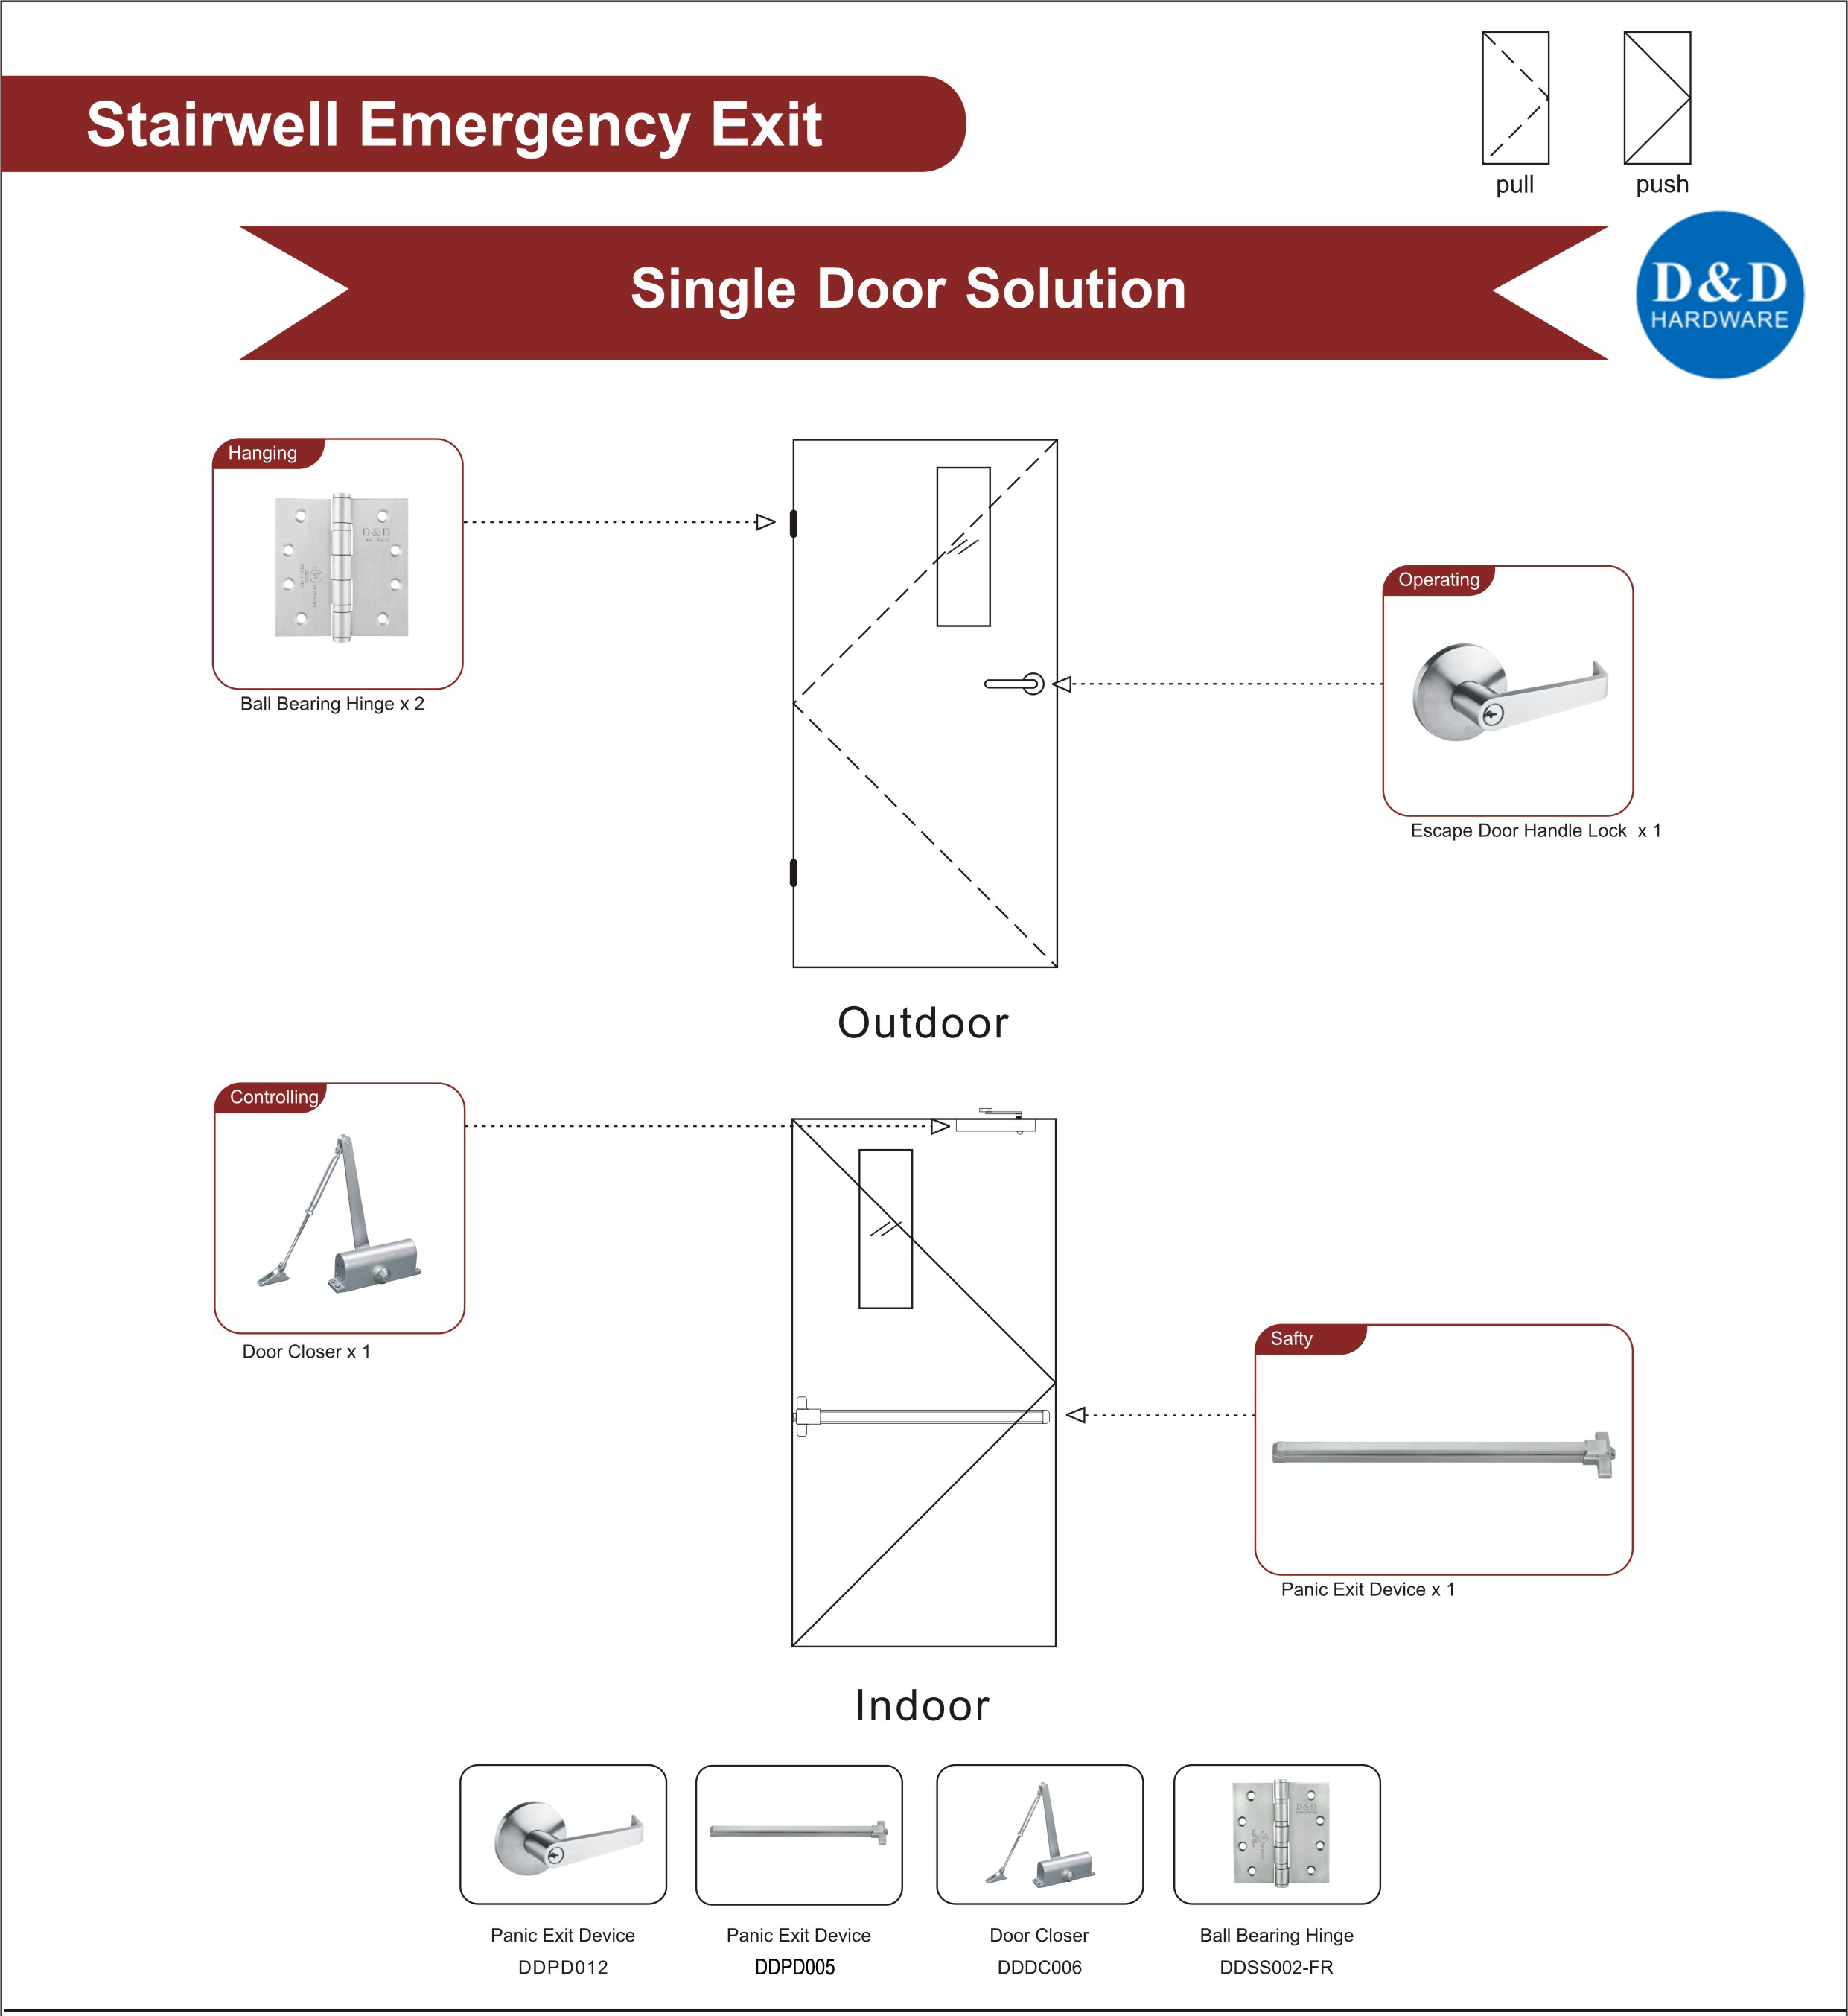 Fire Rate Door Hardware for Stairwell Emergency Exit-D&D Hardware